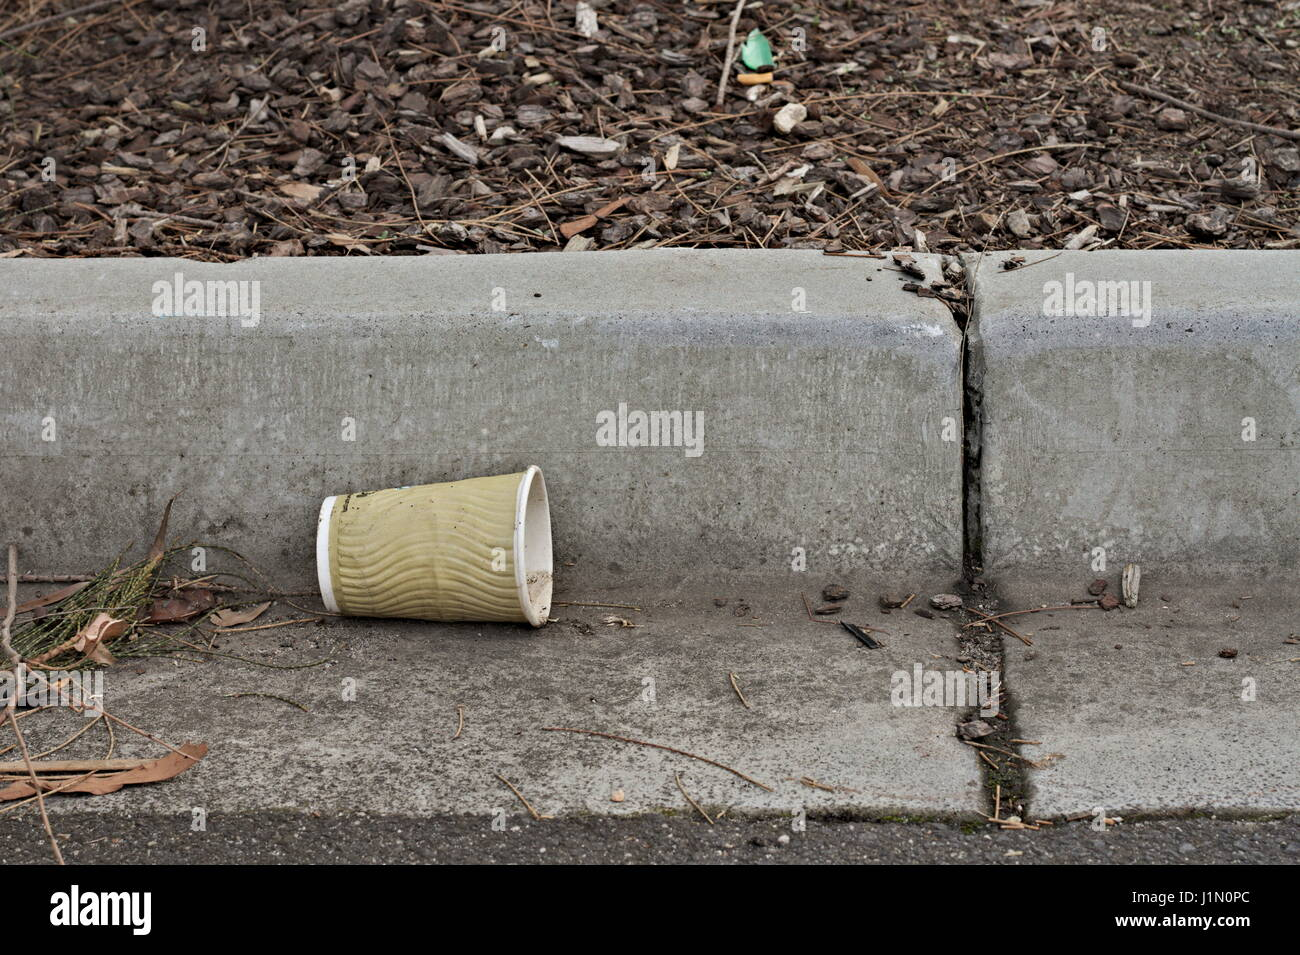 Takeaway coffee cup thrown away in the gutter as trash. - Stock Image